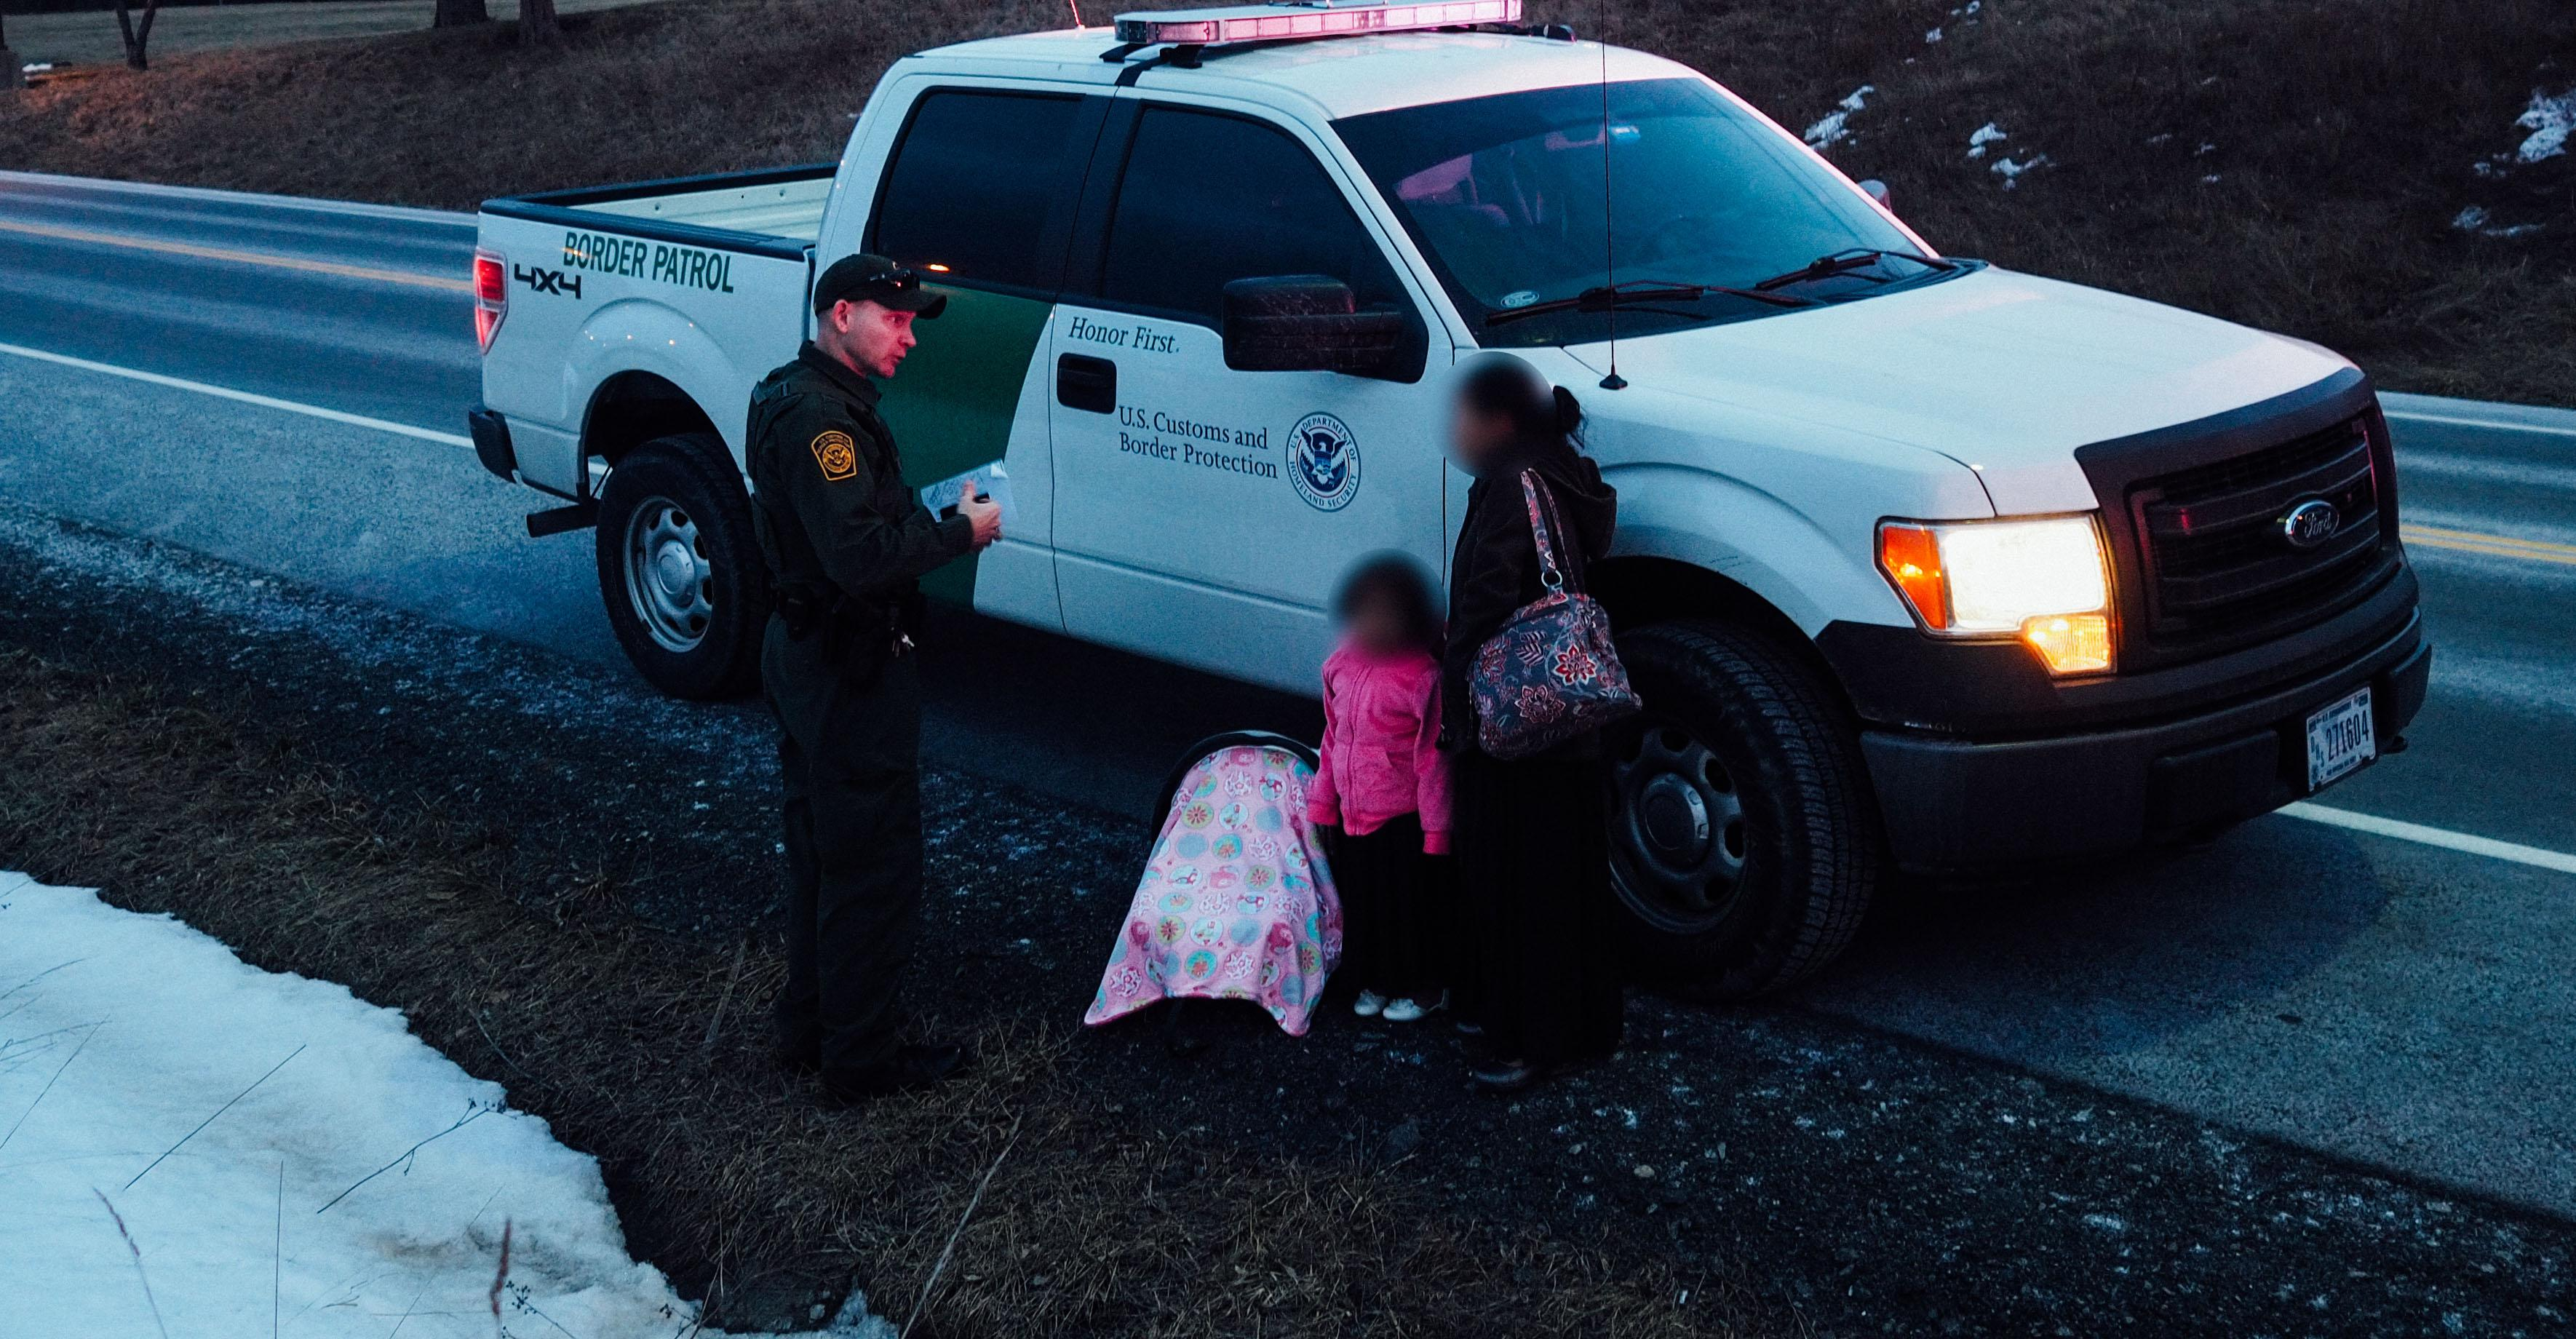 Border Patrol agents took two Guatemalan women and six children into custody after a traffic stop in Geneseo, New York, on March 23.